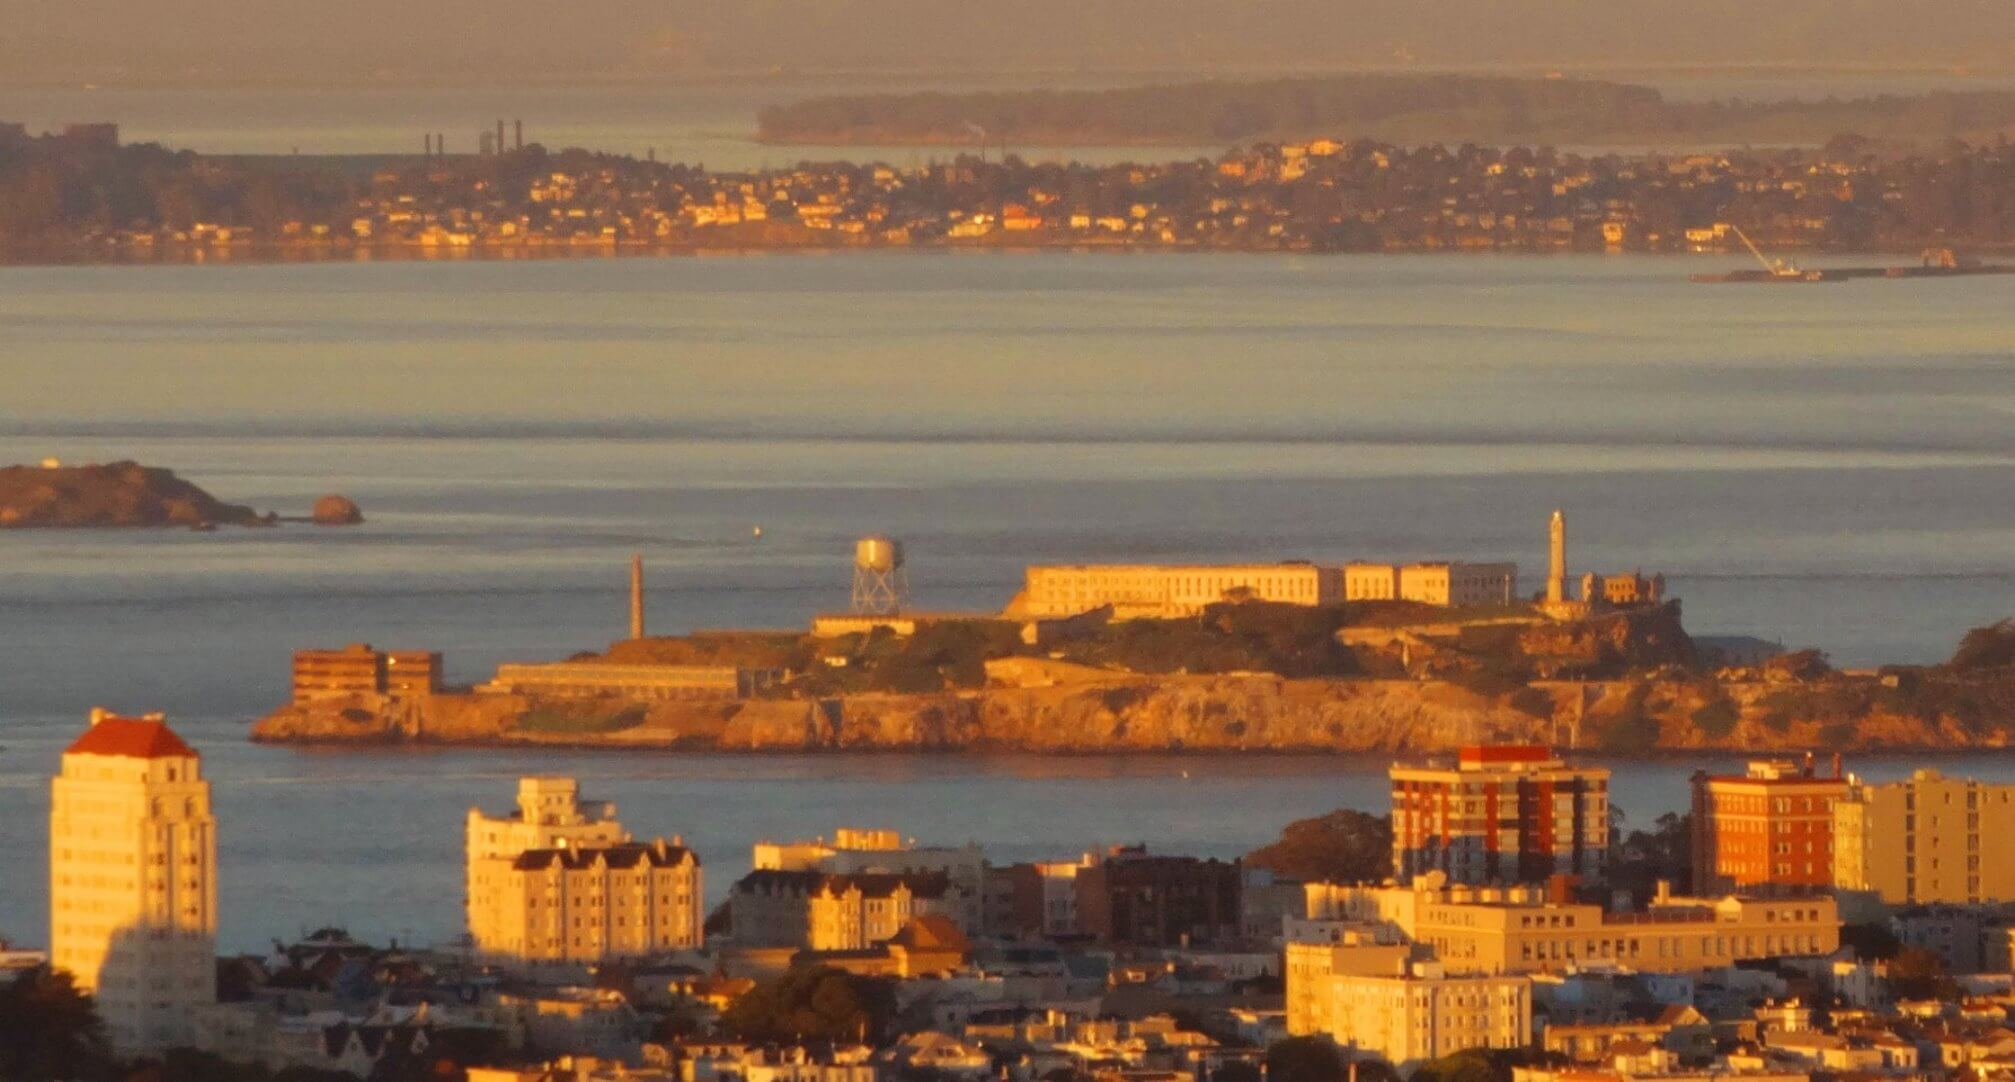 alcatraz_island_night_prison_evening_tour_by_night_from_sf